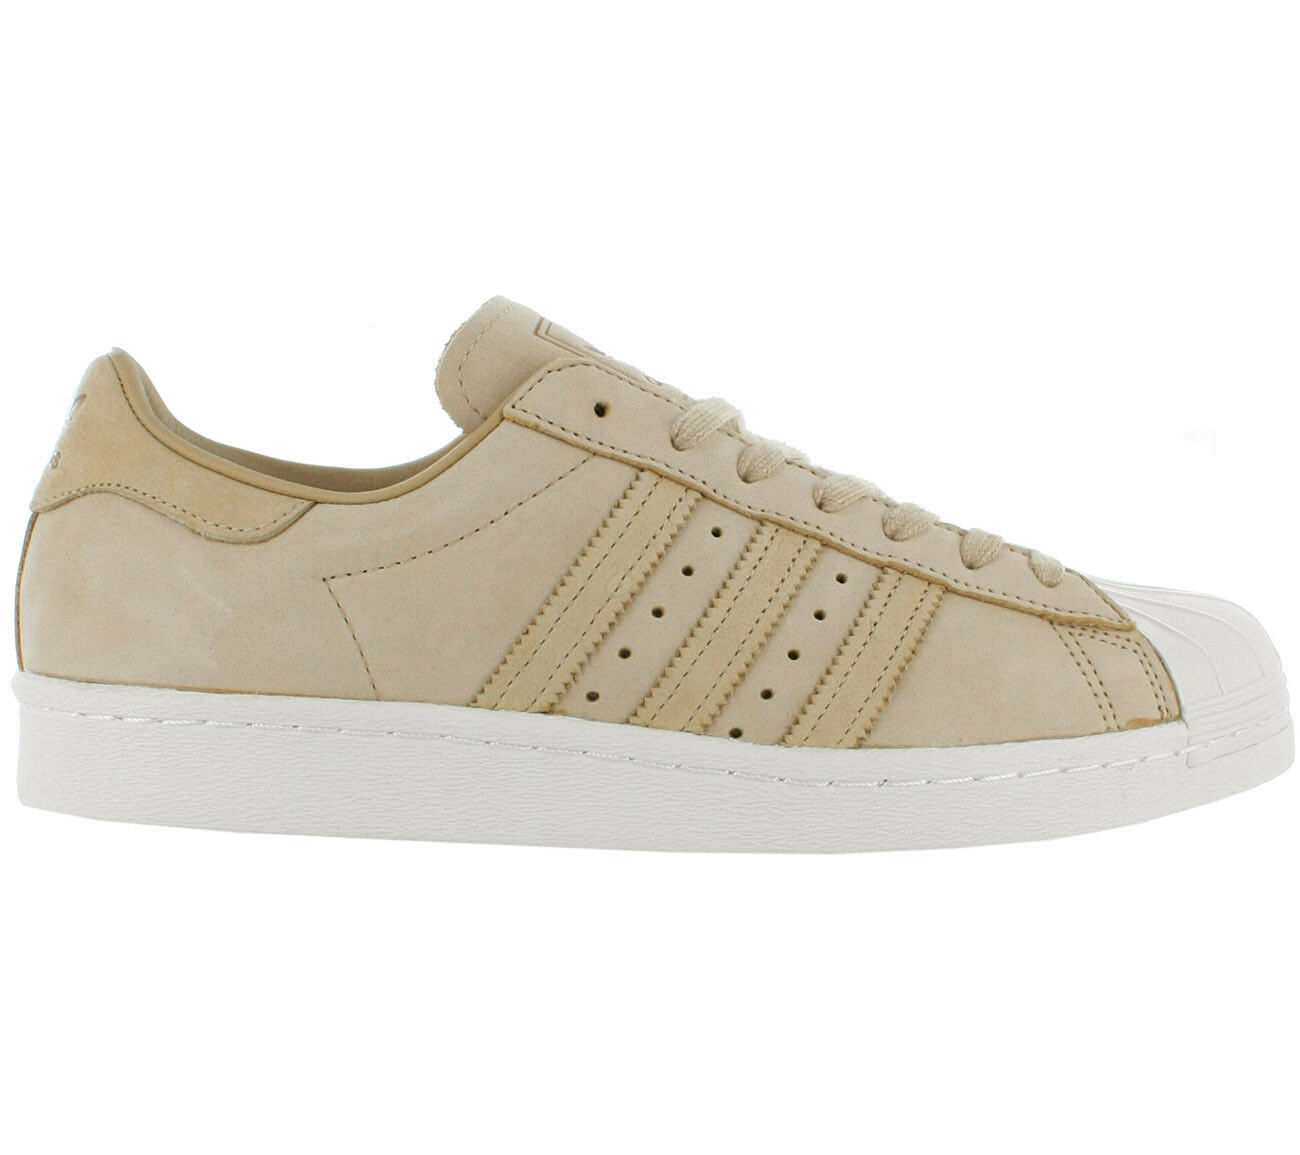 ADIDAS ORIGINALS SUPERSTAR 80s Shoes Beige Leather Trainers Men's Women's BY2507